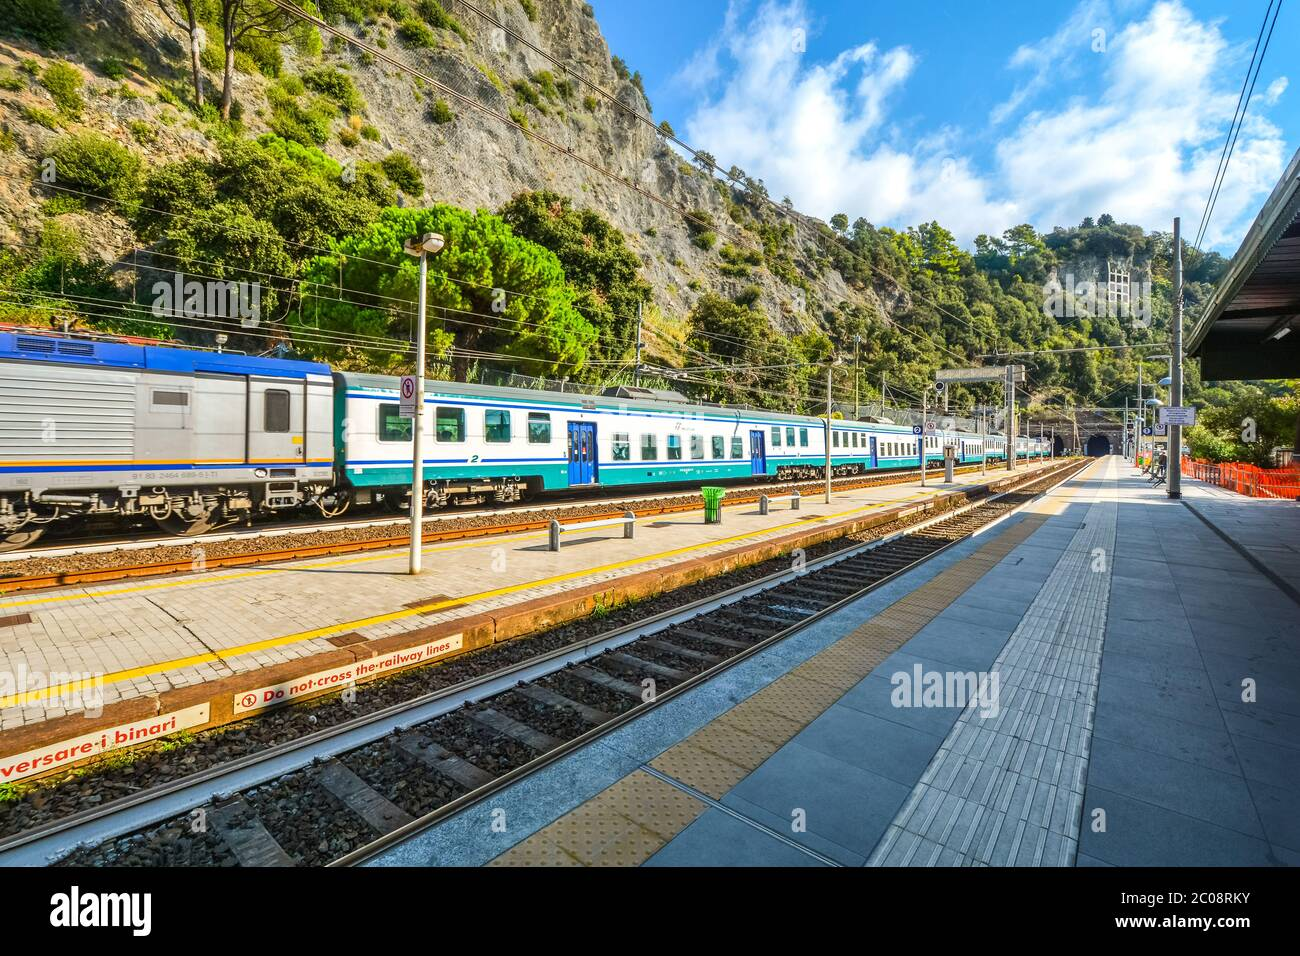 A moving Trenitalia train passes by the tracks at the railway station in the afternoon at Monterosso Al Mare, Cinque Terre Italy Stock Photo